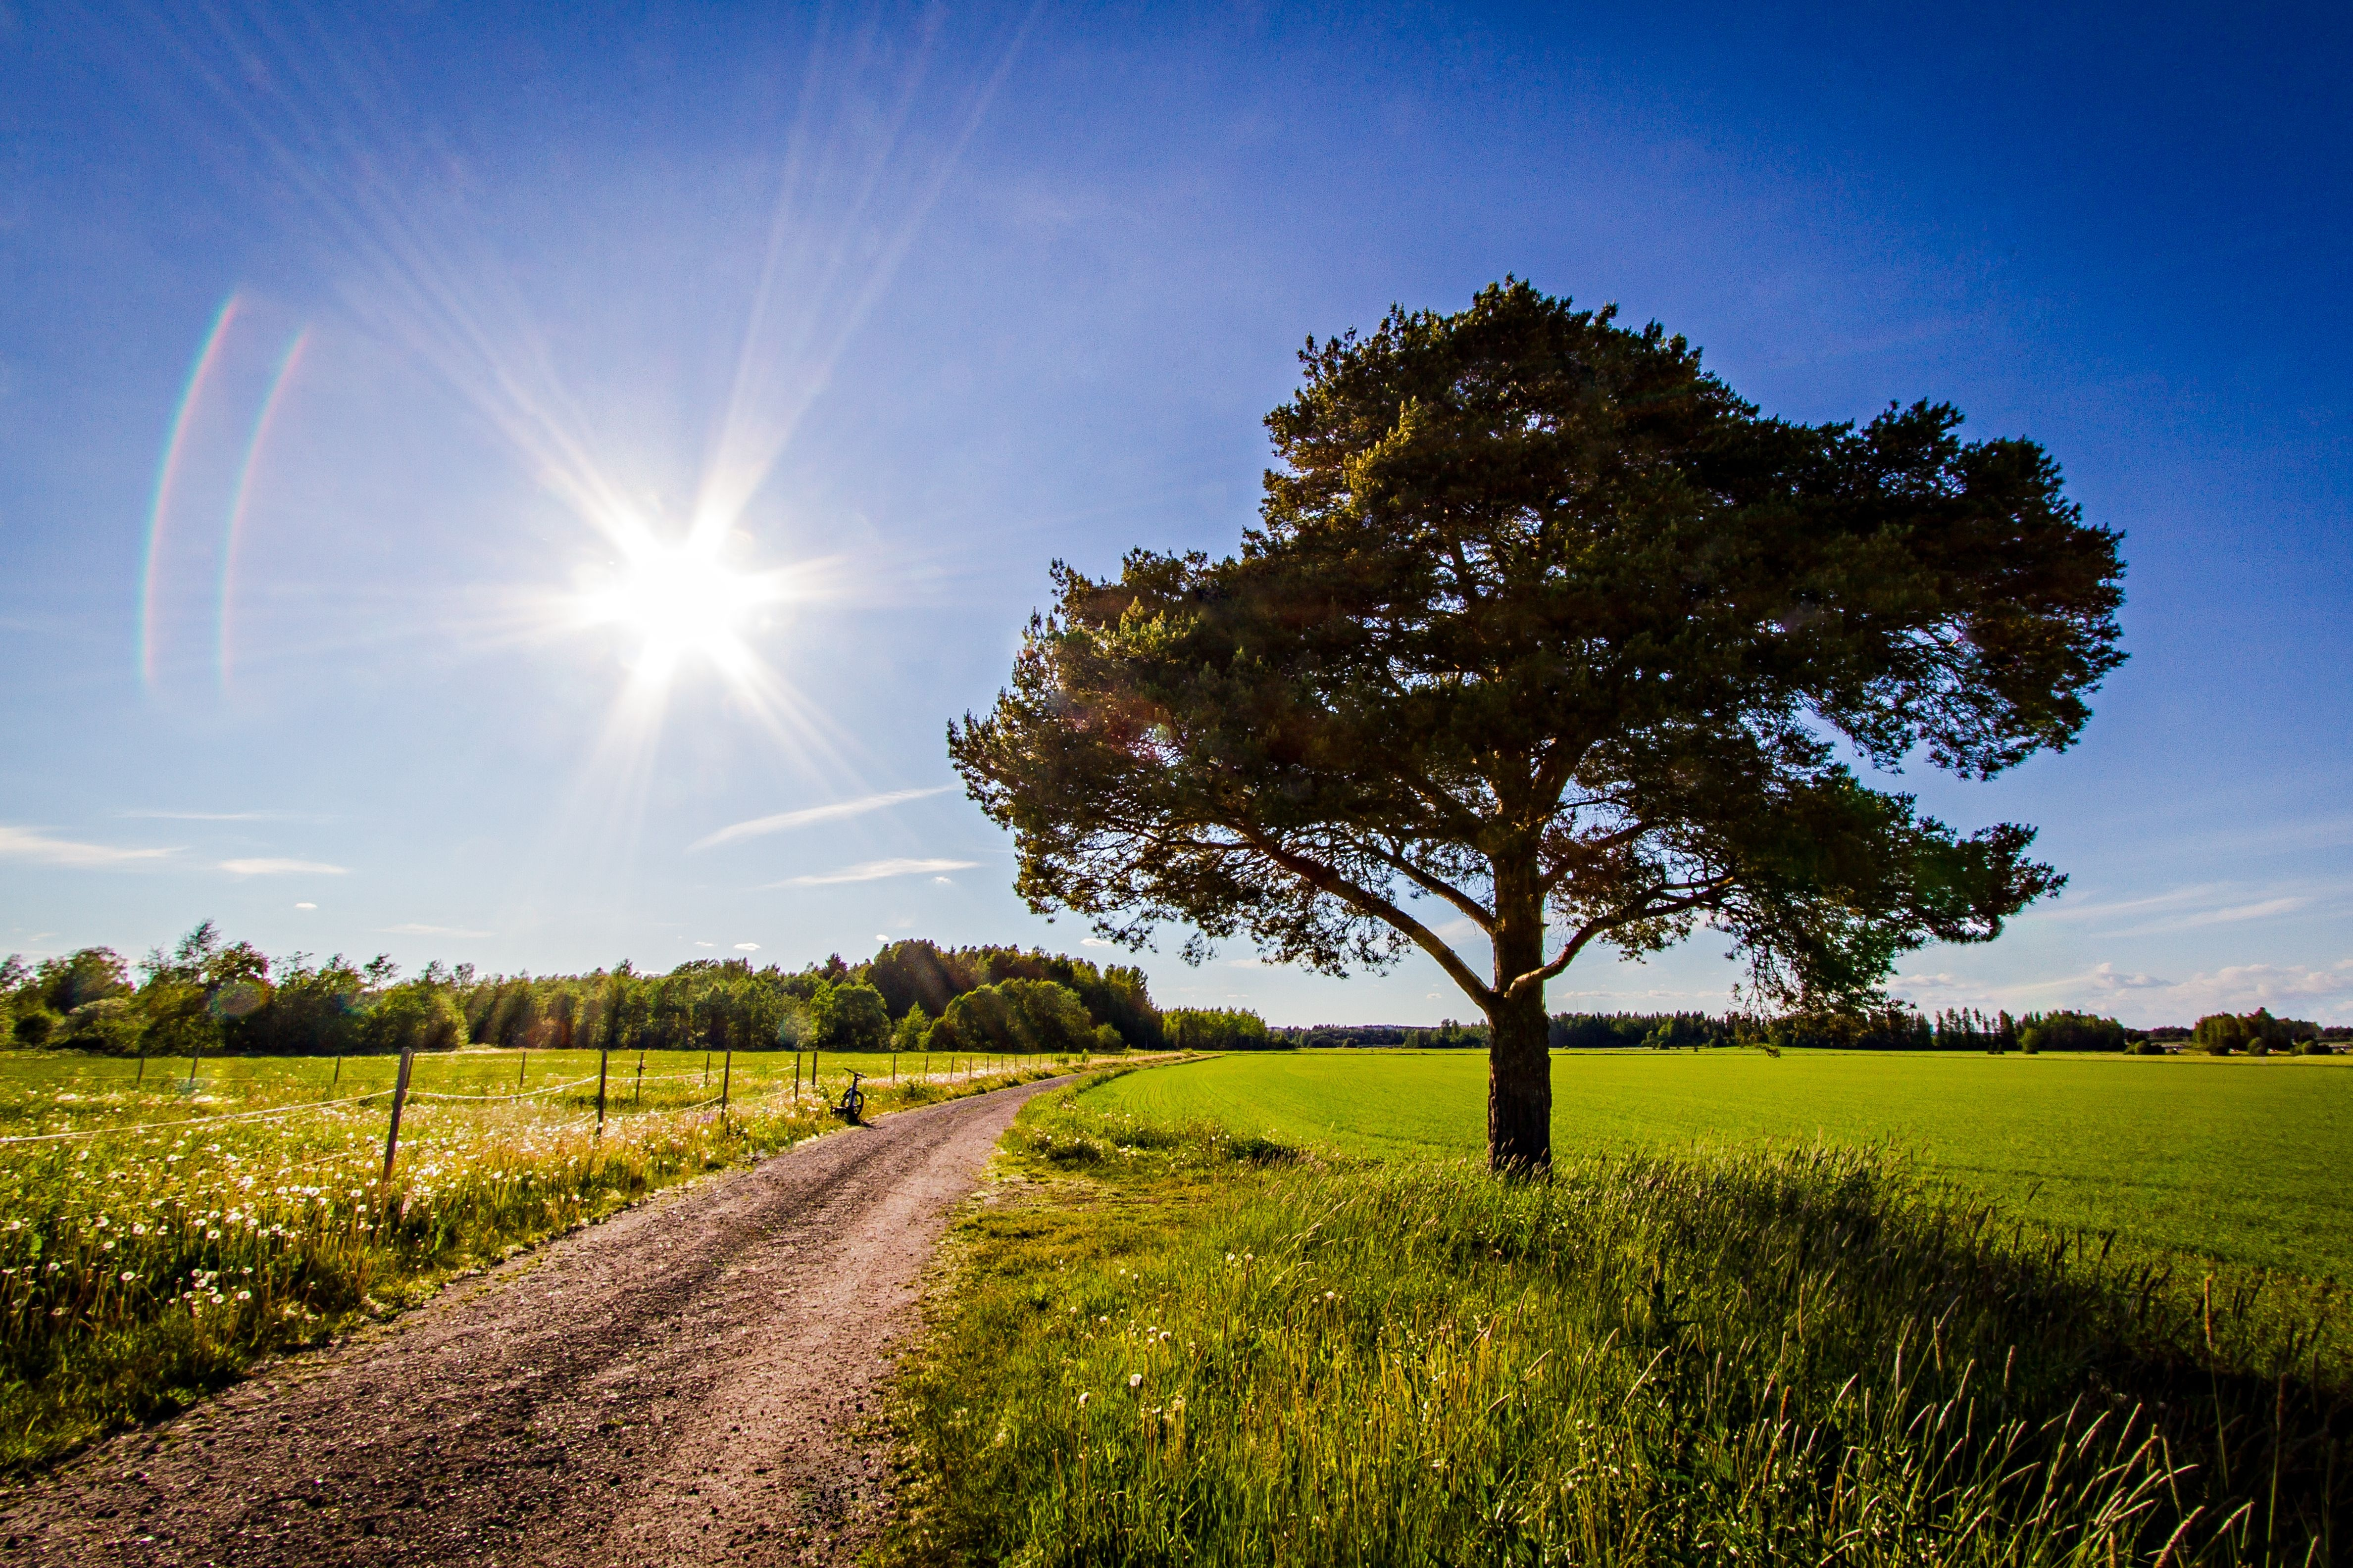 Road field tree landscape f wallpaper 4753x3168 195311 for Landscape trees